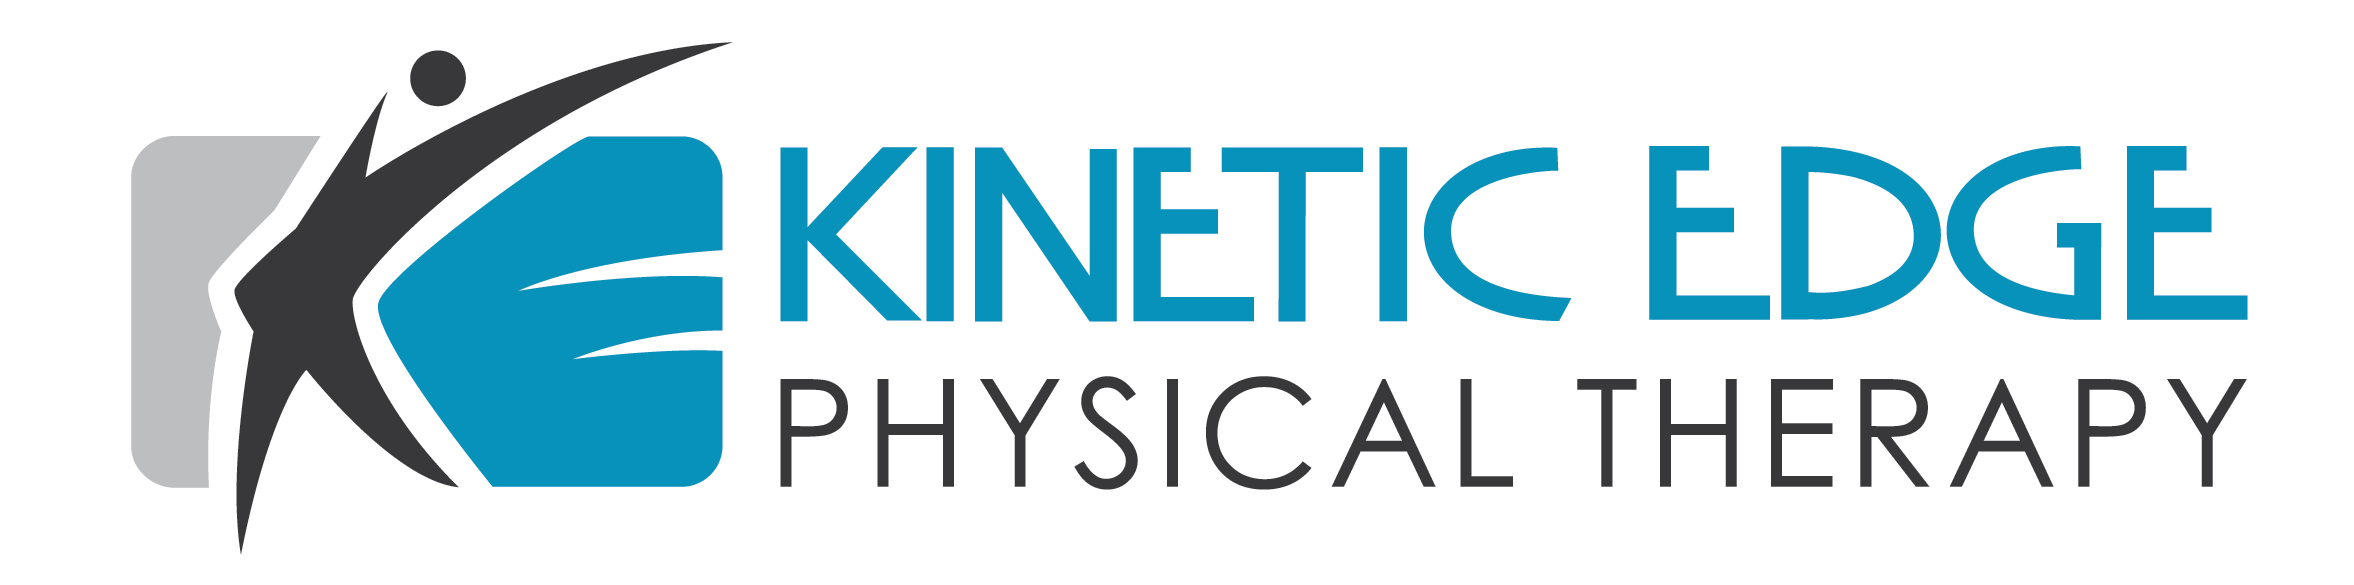 Kinetic Edge Physical Therapy Slide Image